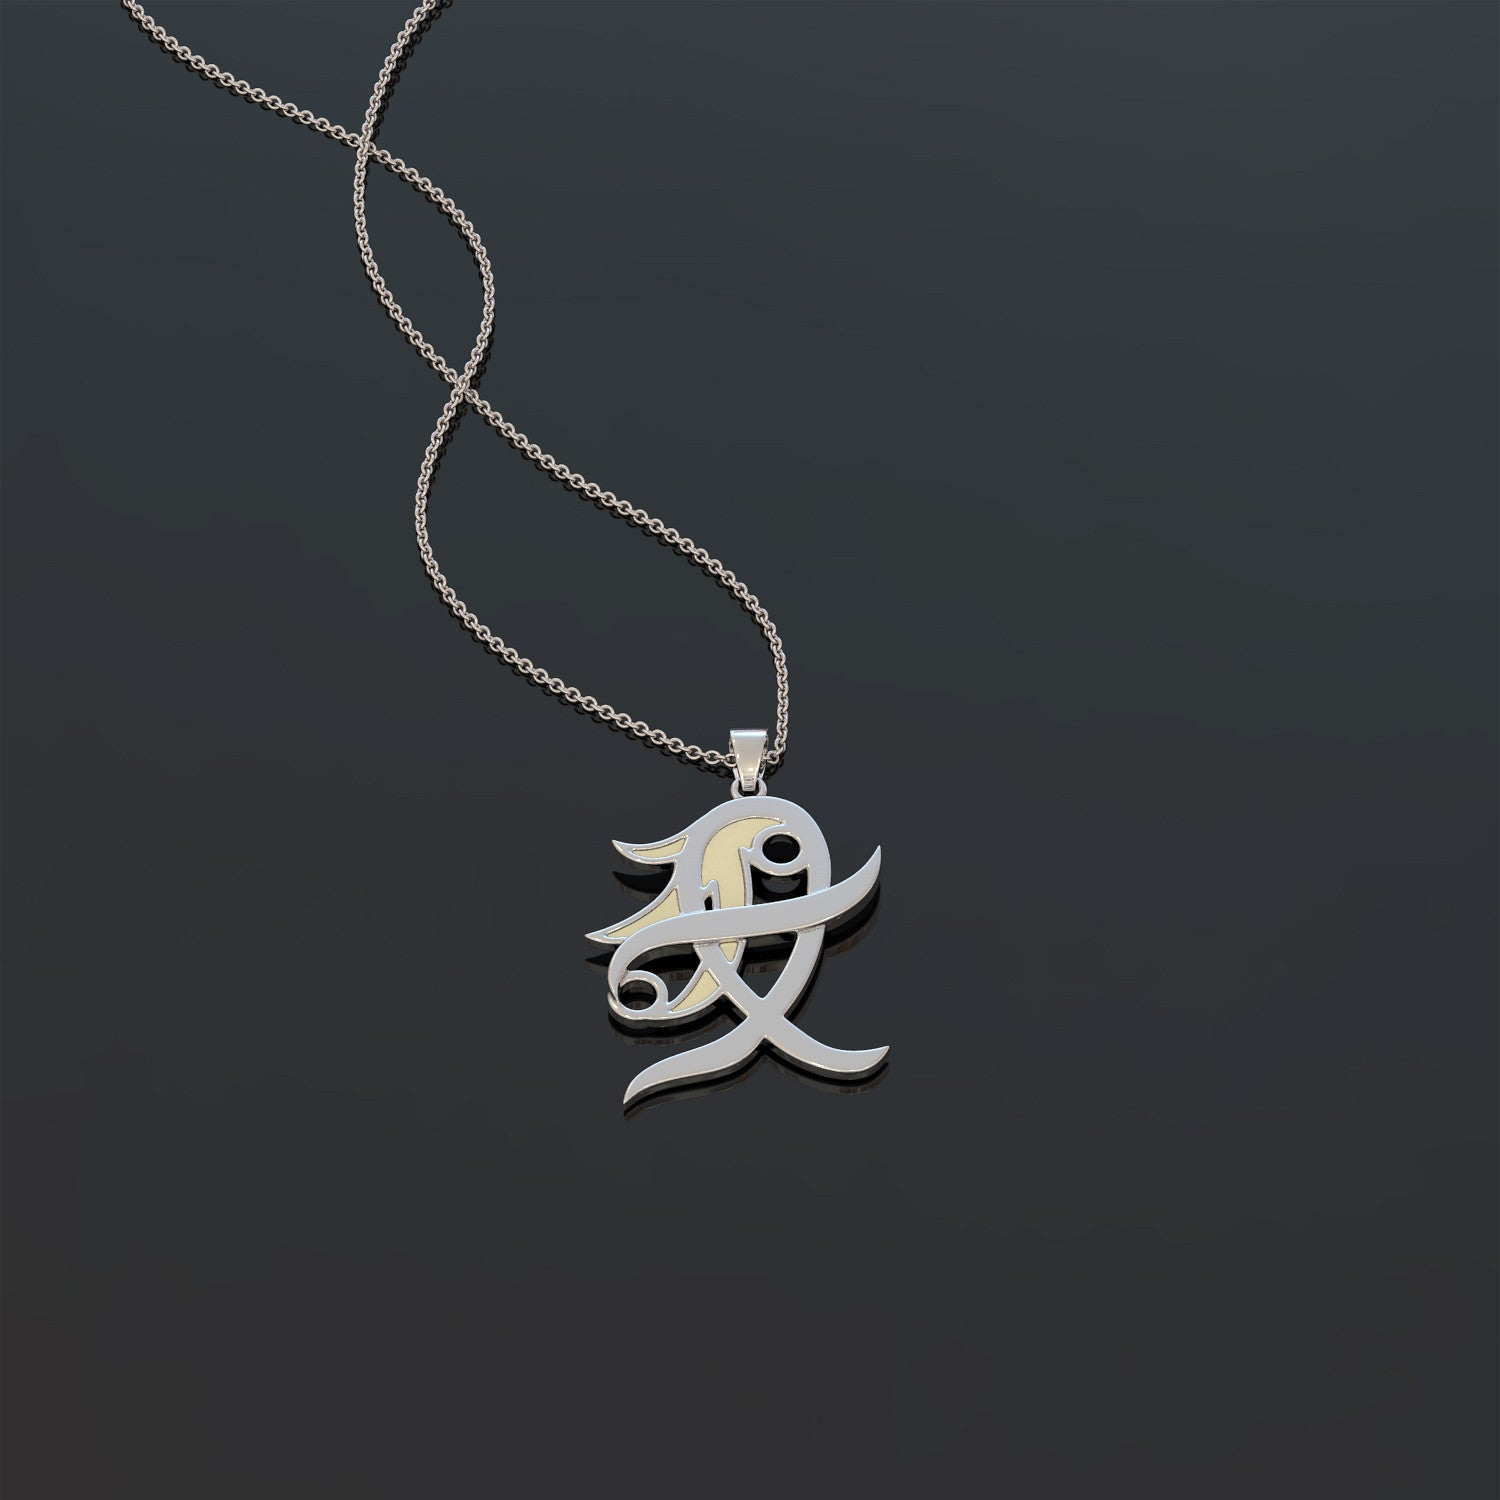 zodiac necklace virgo blinglane products